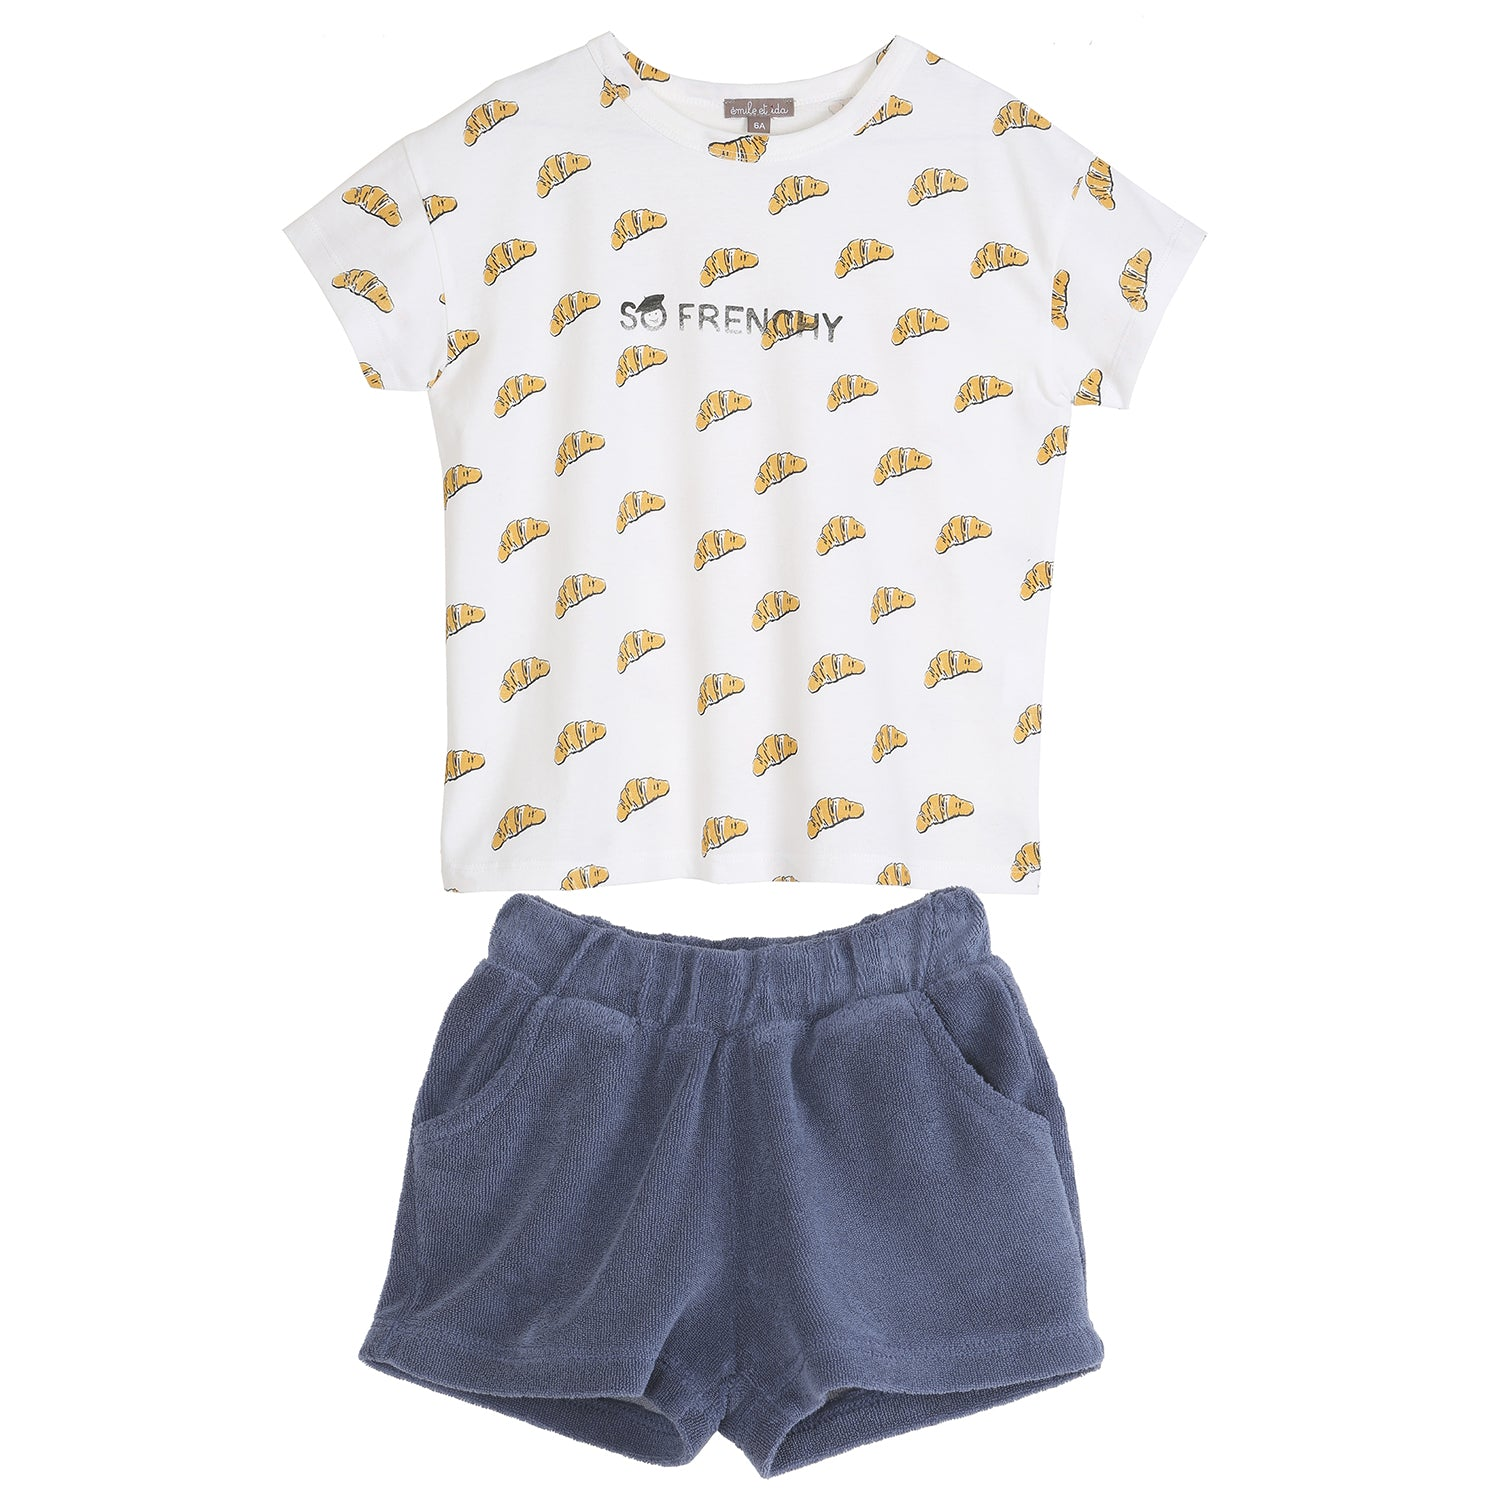 yoyo, kids, baby, boys, girls, emile et ida, summer, casual, lounge, croissant, graphic t-shirt, terry cloth, shorts, outfit, set